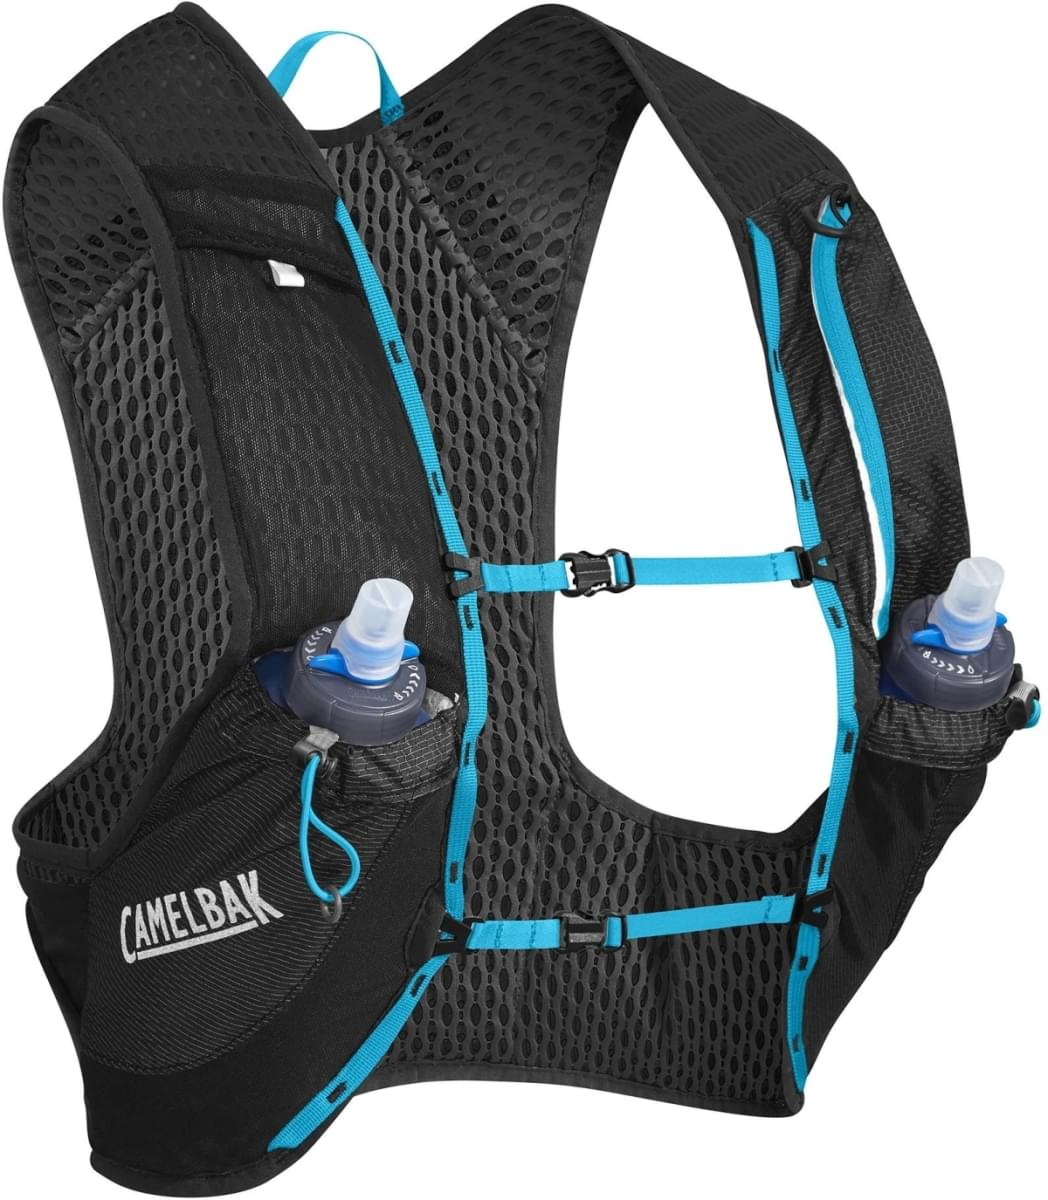 Camelbak Nano Vest - Black/Atomic Blue L